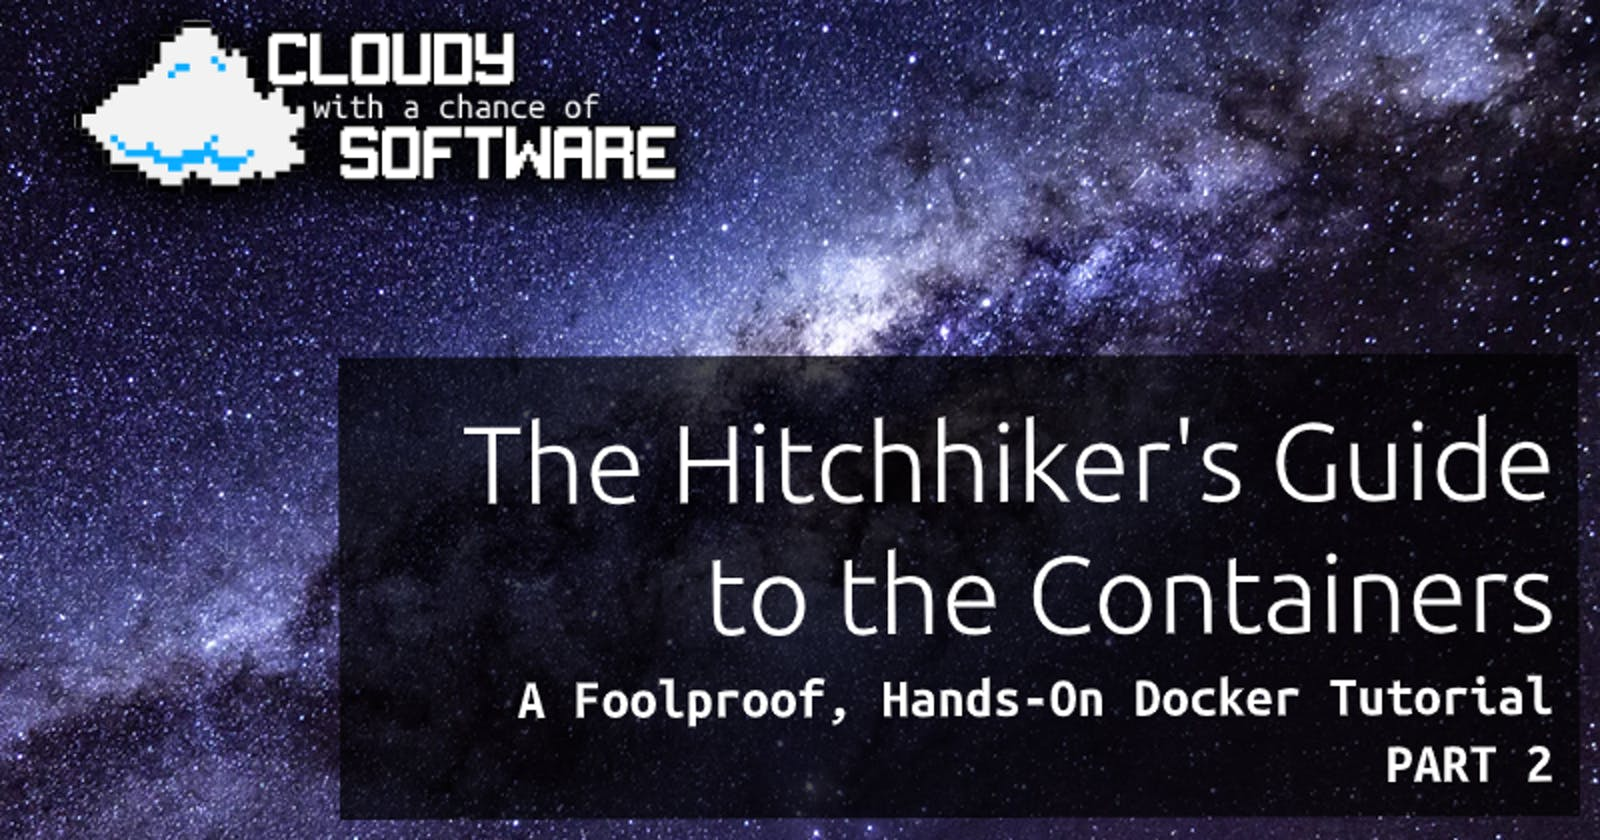 The Hitchhiker's Guide to the Containers: A Foolproof, Hands-on Docker Tutorial (Part 2)